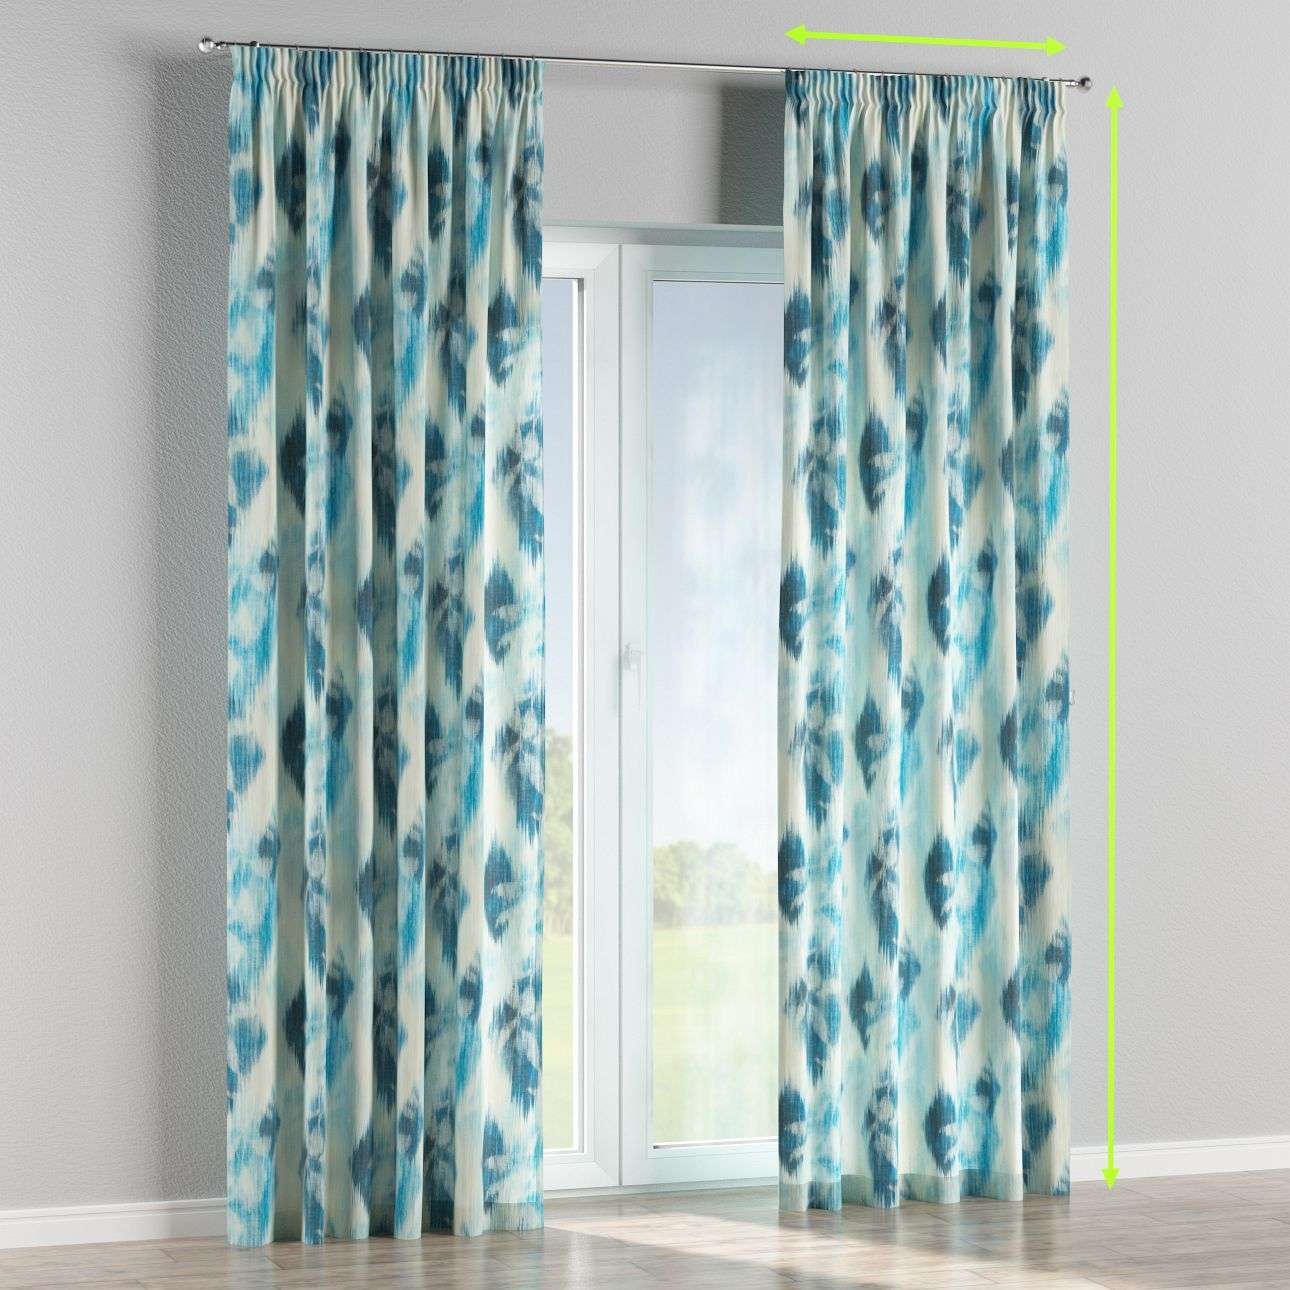 Pencil pleat lined curtains in collection Aquarelle, fabric: 140-71